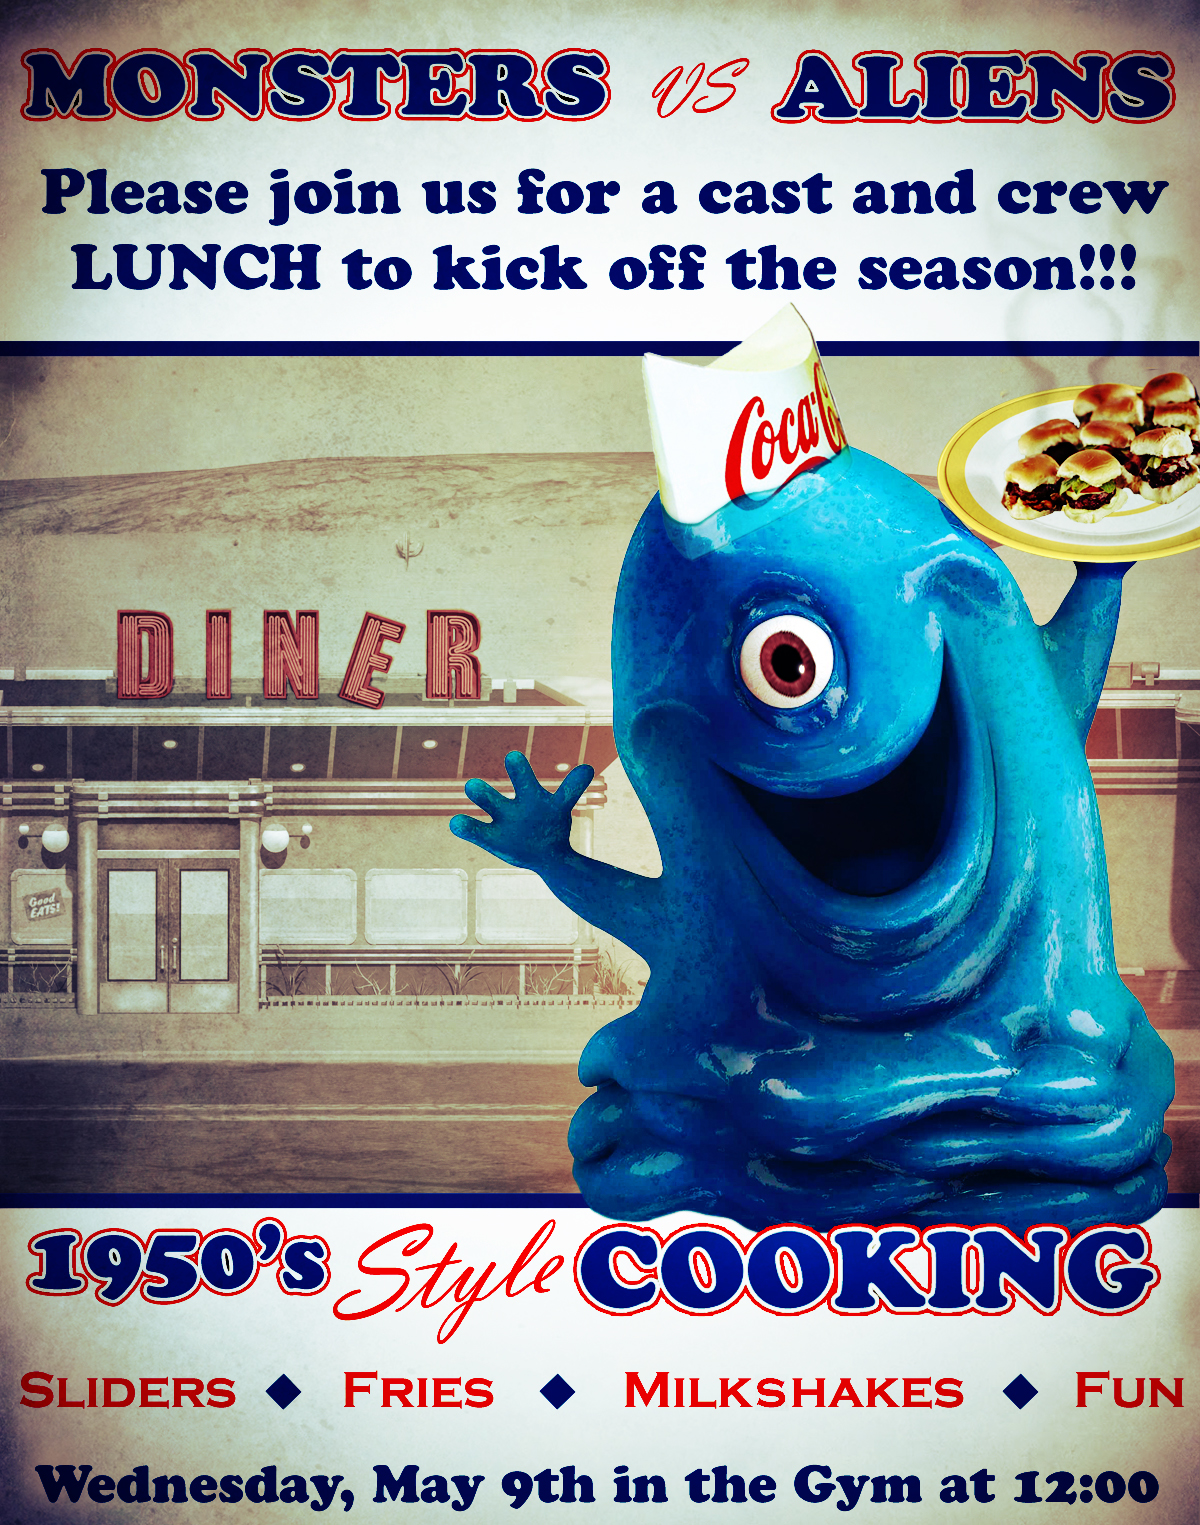 Monsters Vs. Aliens Cast and Crew Lunch Poster Design